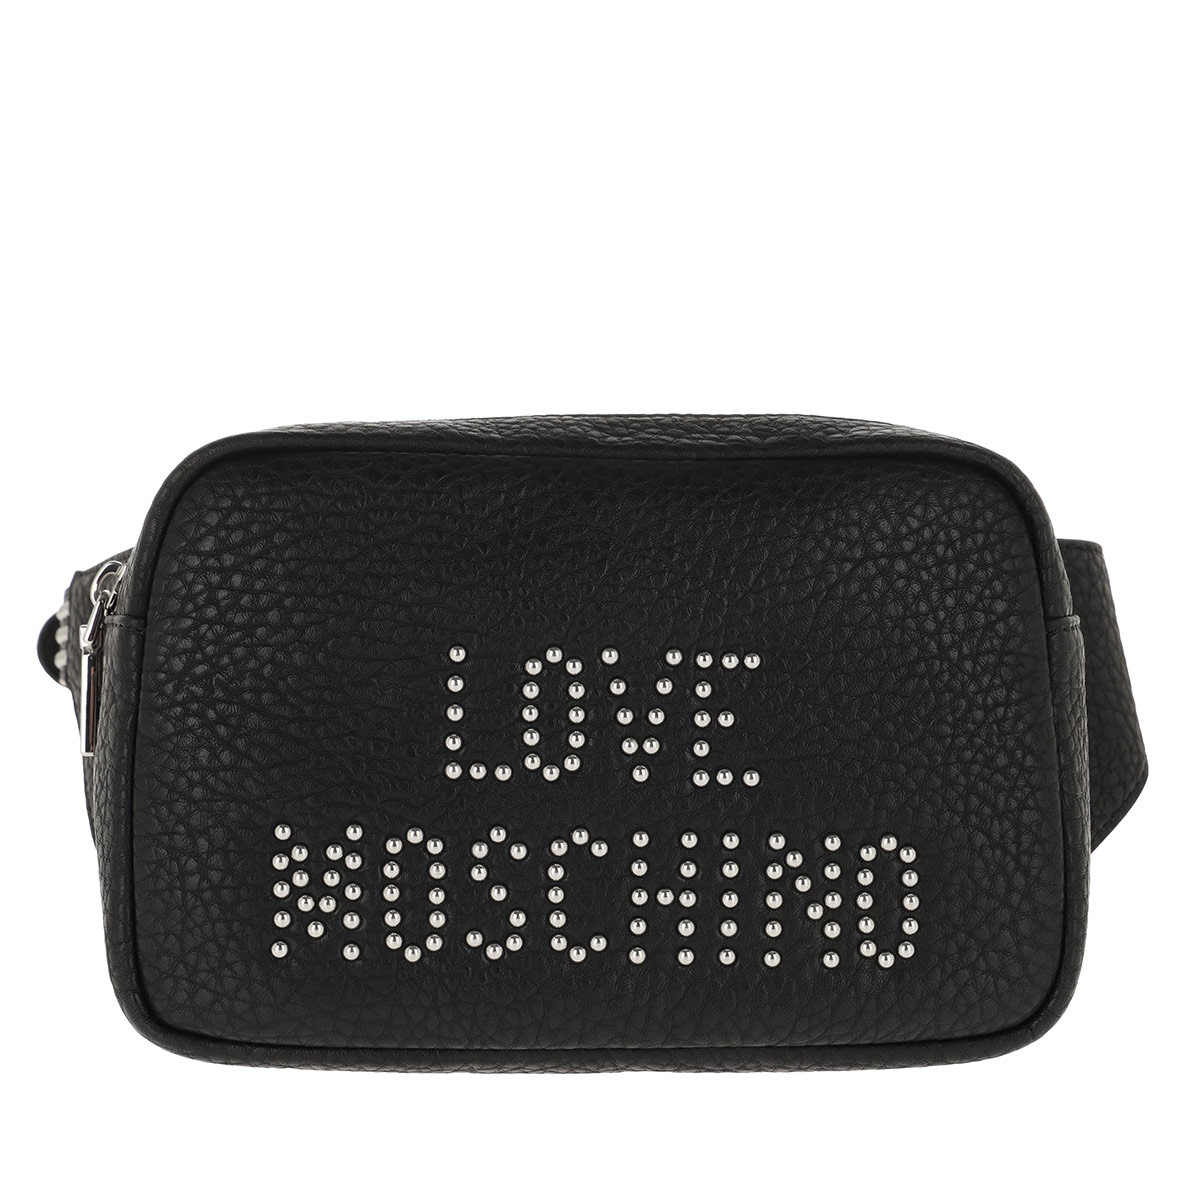 Love Moschino Gürteltasche - Grain Belt Bag Nero/Nickel - in schwarz - für Damen